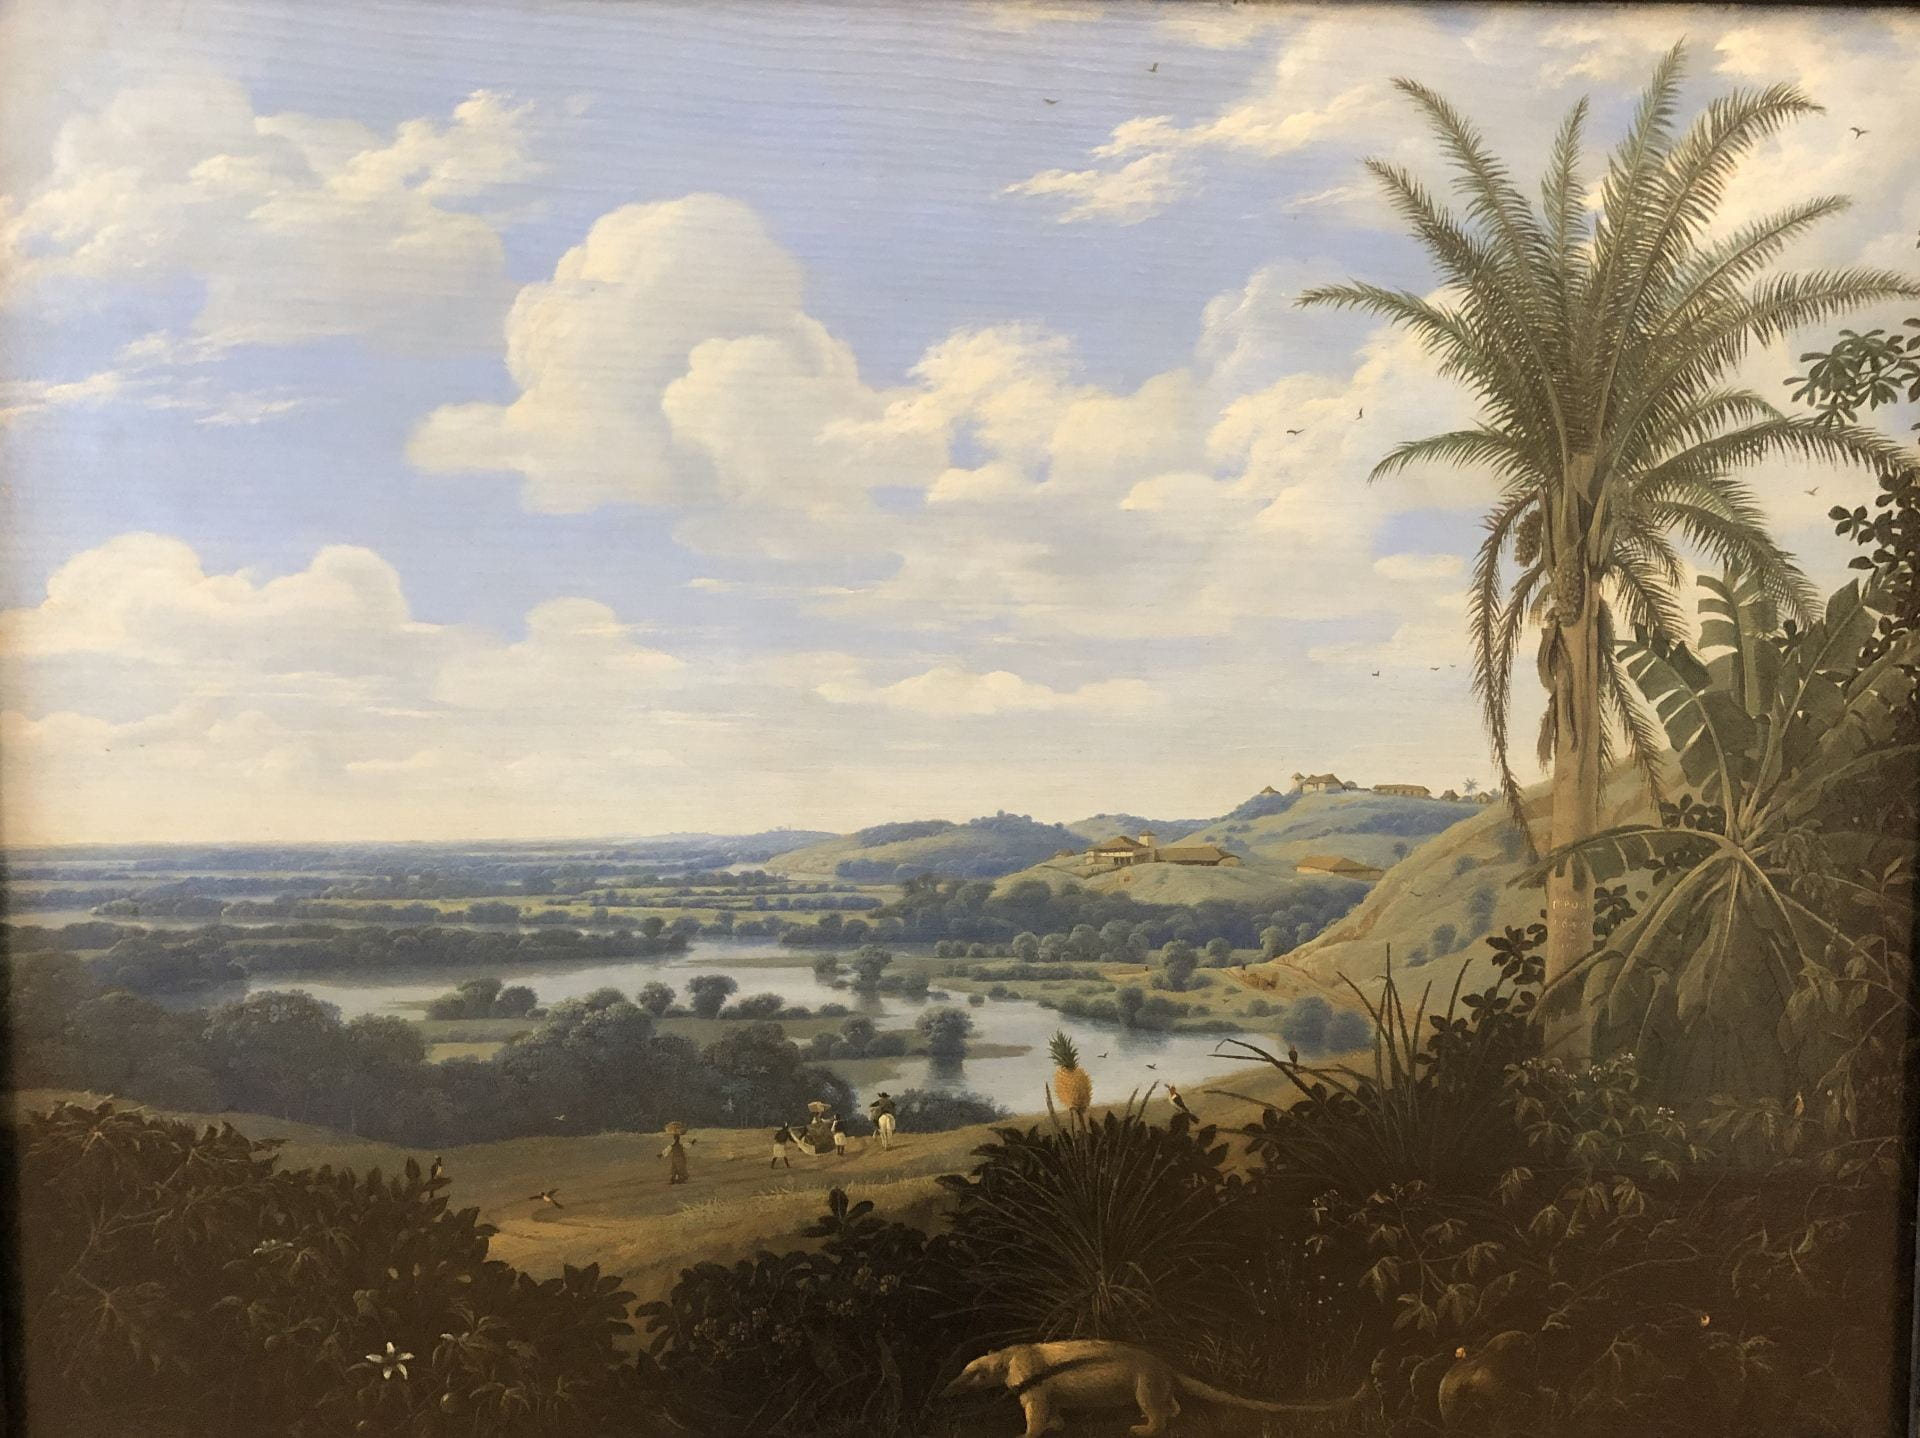 A landscape with large palm tree at right. An anteater walks through the foreground. The middle- and back-grounds are dominated by bands of golden pasture and darker forest, all below a large blue sky.